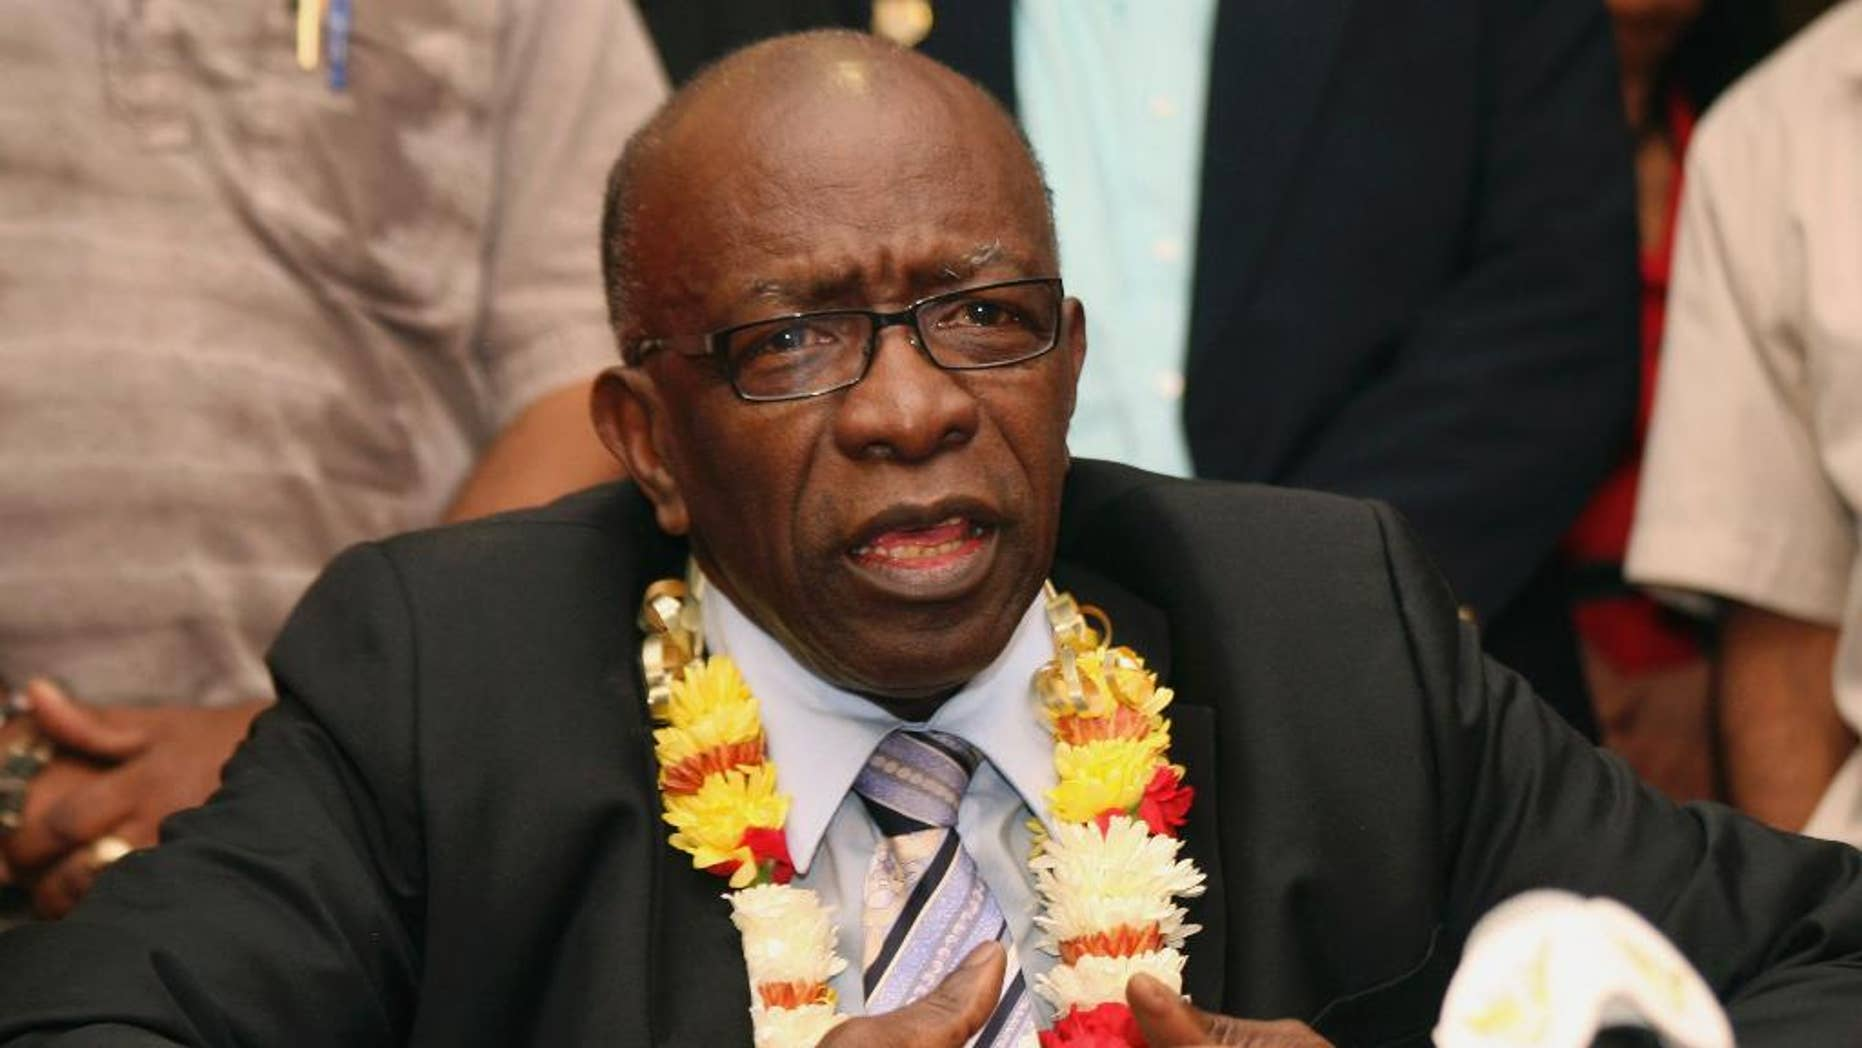 FILE - In this Thursday, June 2, 2011 file photo, suspended FIFA executive Jack Warner gestures during a news conference held shortly after his arrival at the airport in Port-of-Spain, in his native Trinidad and Tobago. Warner was one of the 14 people indicted Wednesday May 27, 2015 in the U.S. on corruption charges.  (AP Photo/Shirley Bahadur, File)